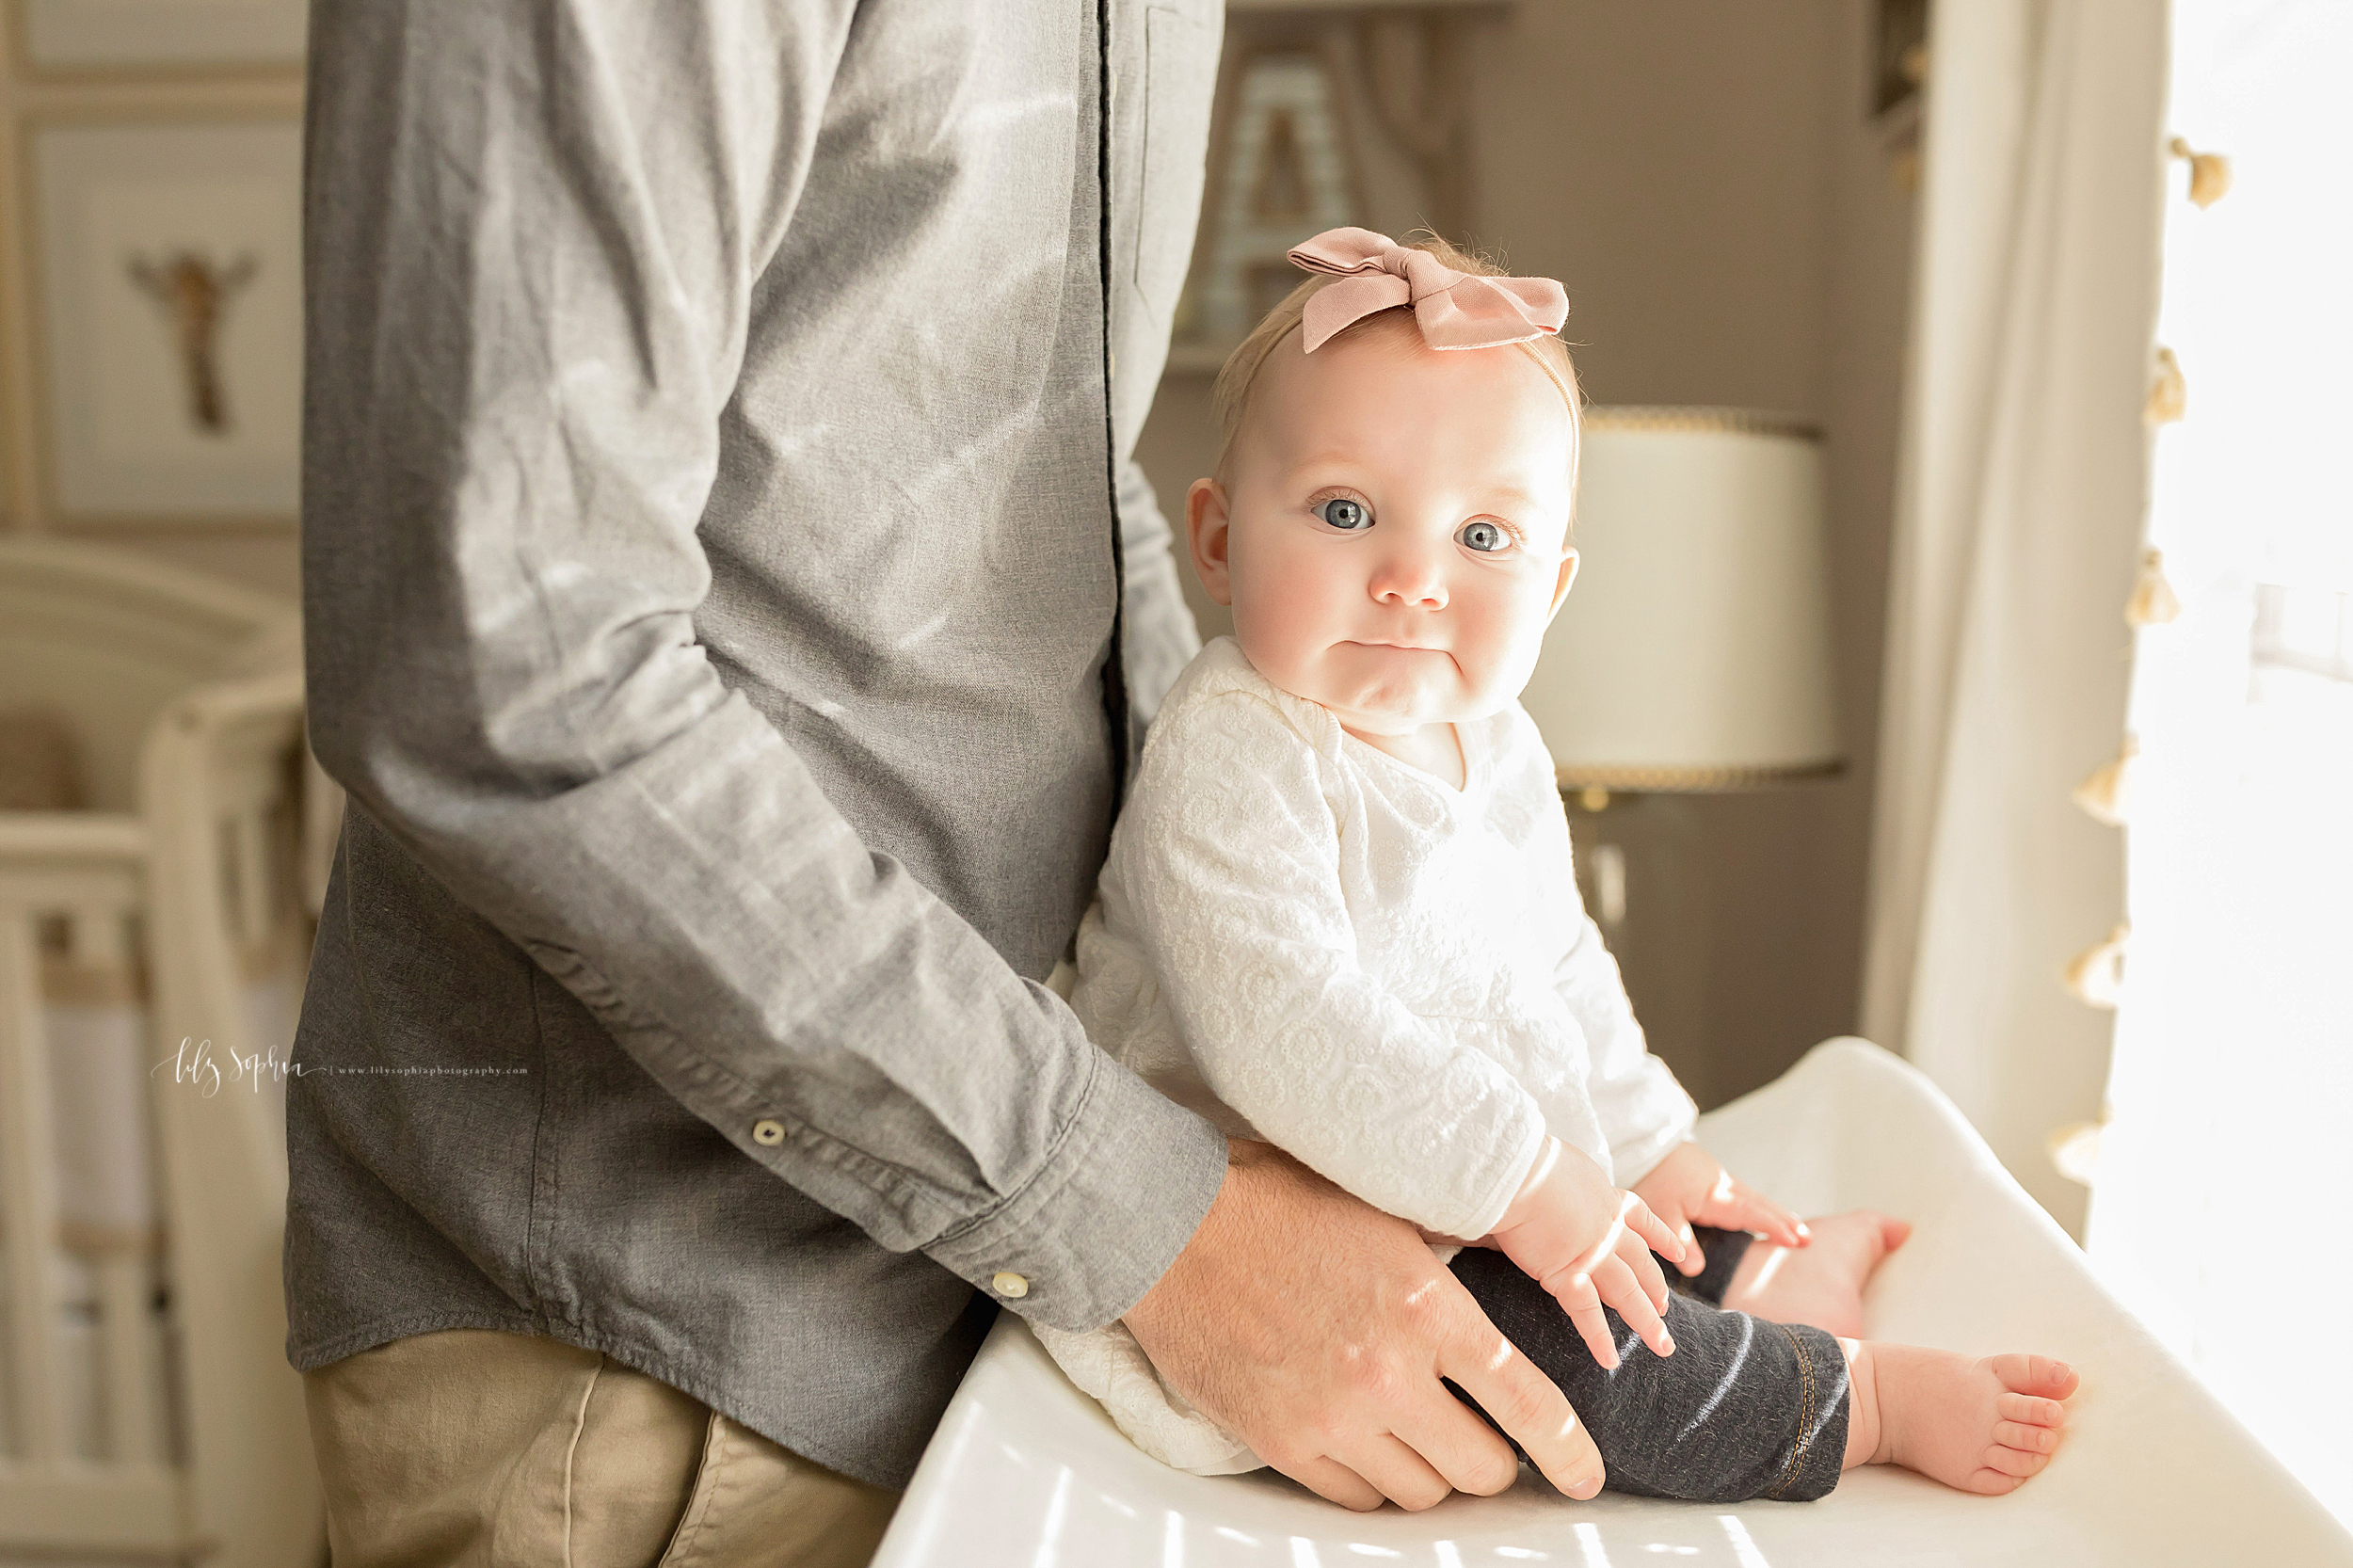 atlanta-midtown-brookhaven-ashford-dunwoody-virginia-highlands-roswell-decatur-lily-sophia-photography-in-home-six-month-milestone-family-lifestyle-session-sandy-springs_0660.jpg